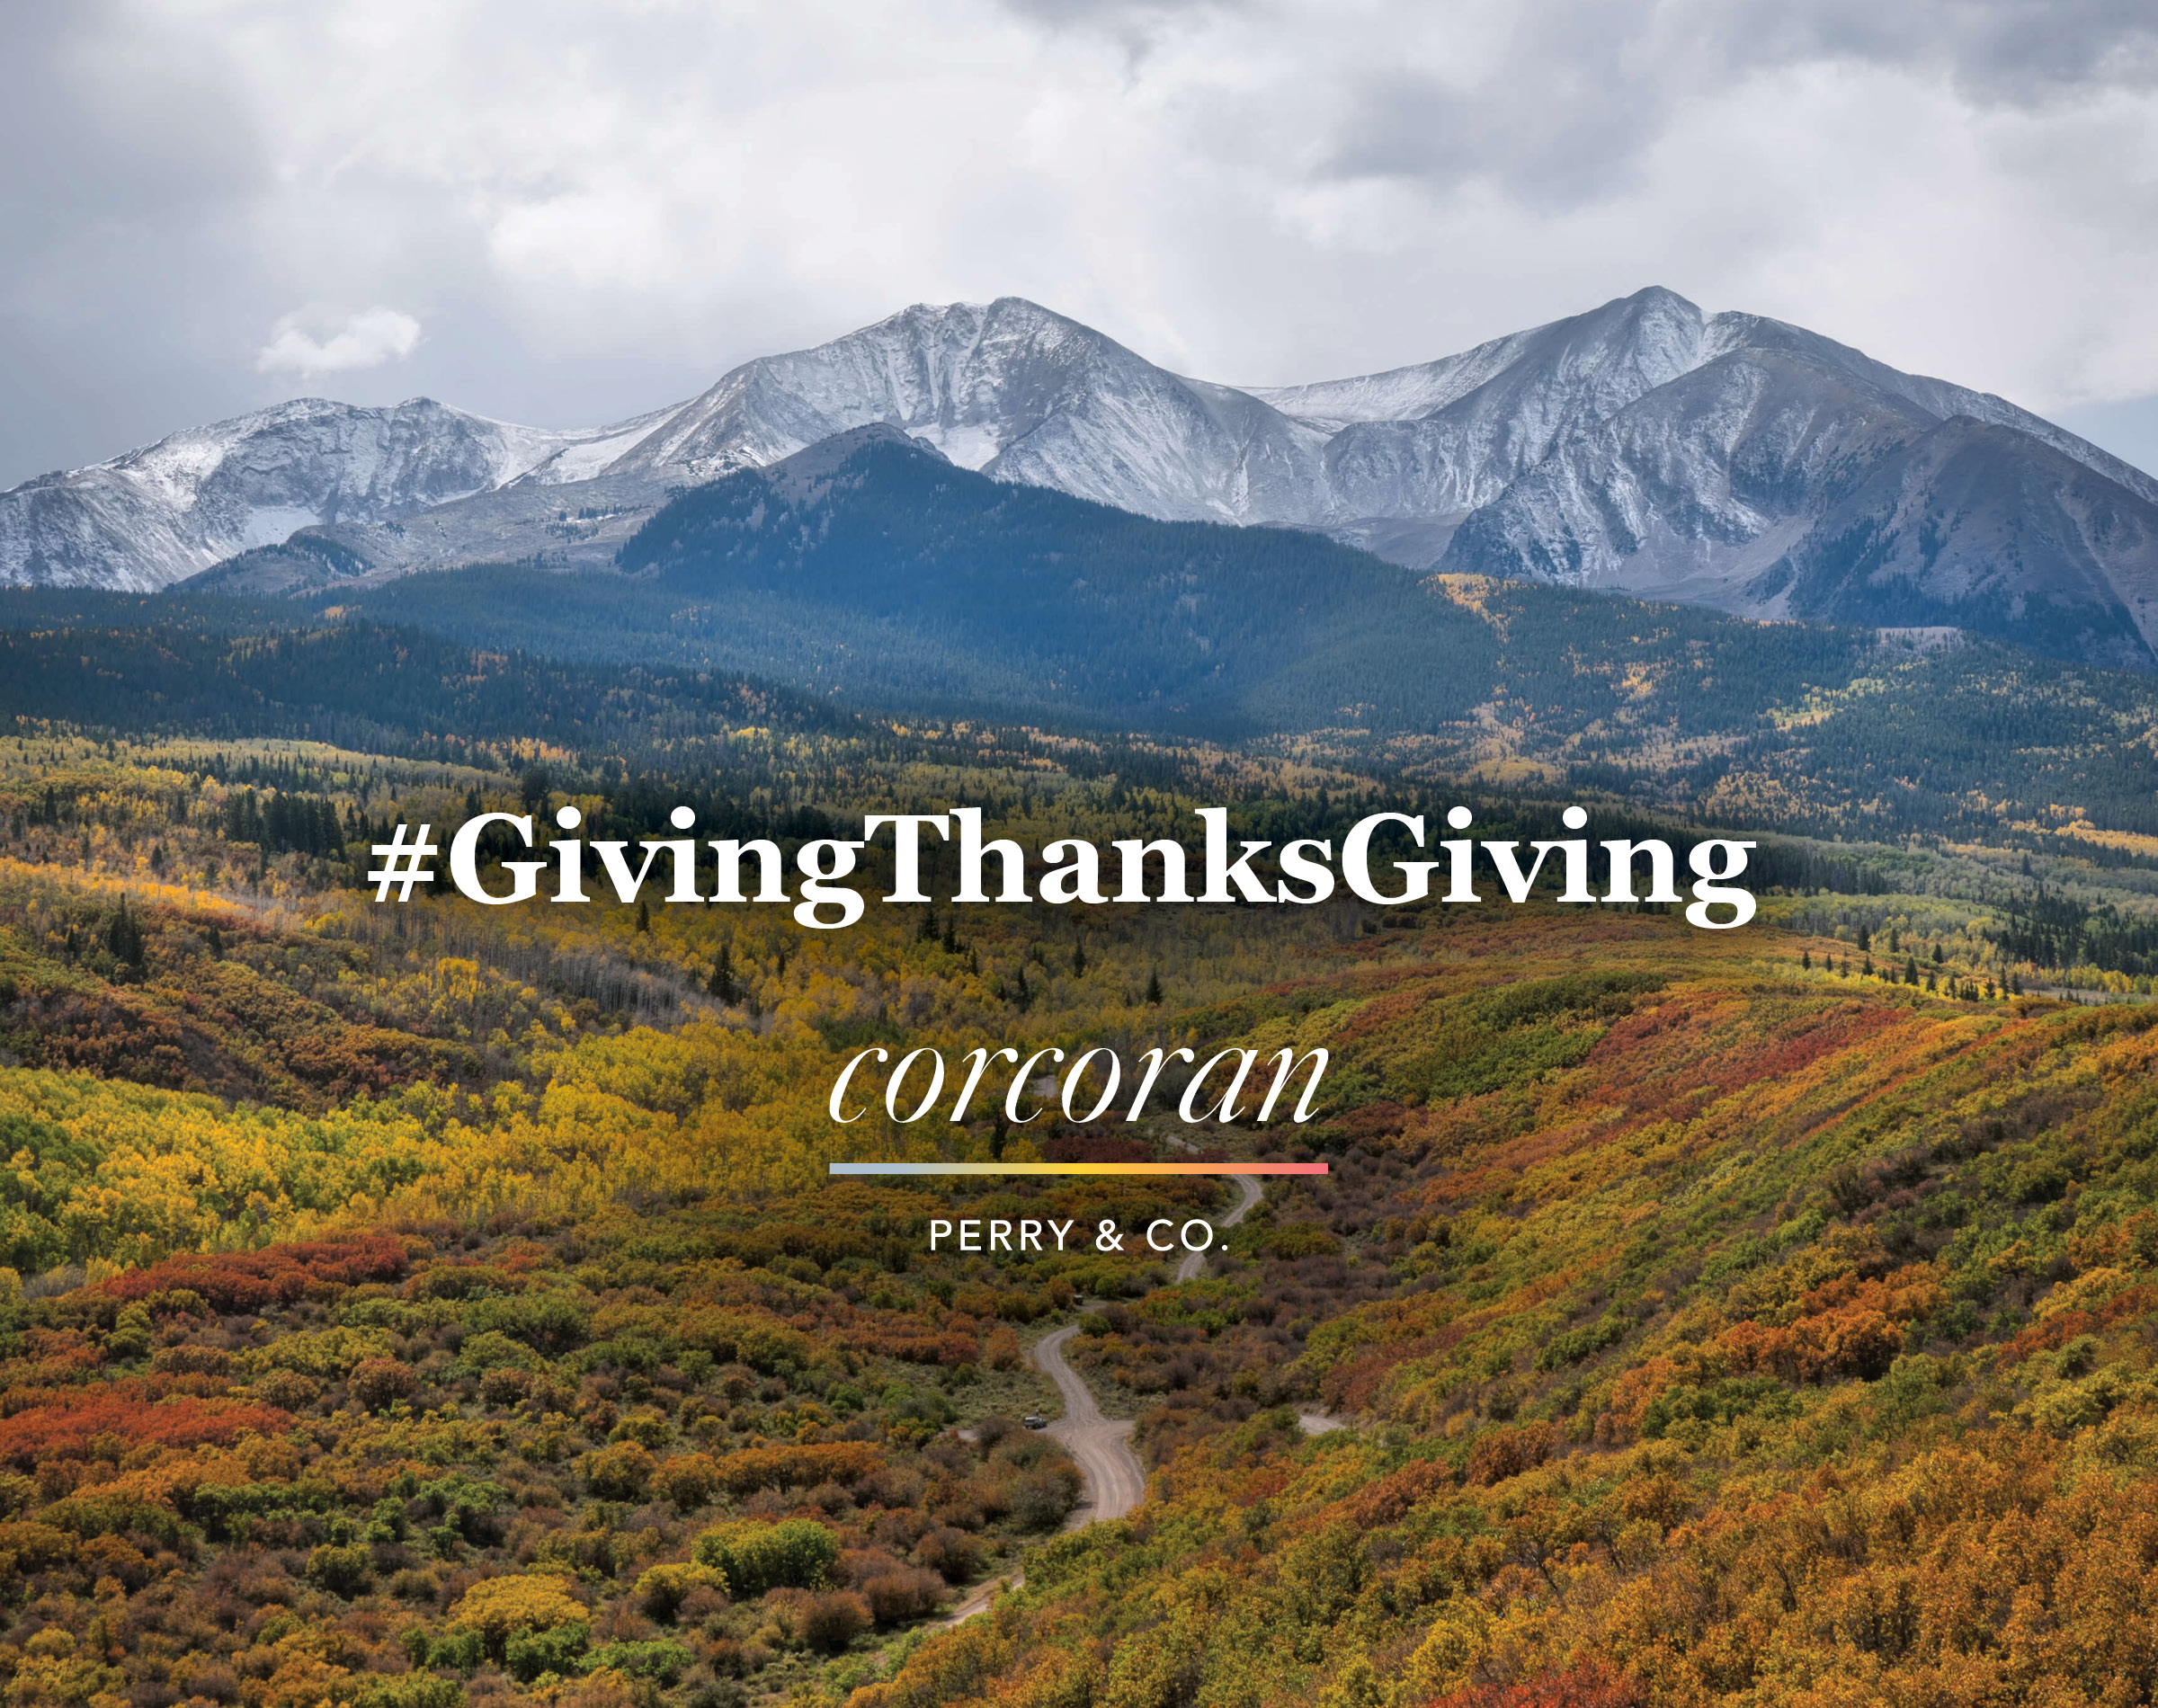 Corcoran Perry & Co: Giving Thanksgiving